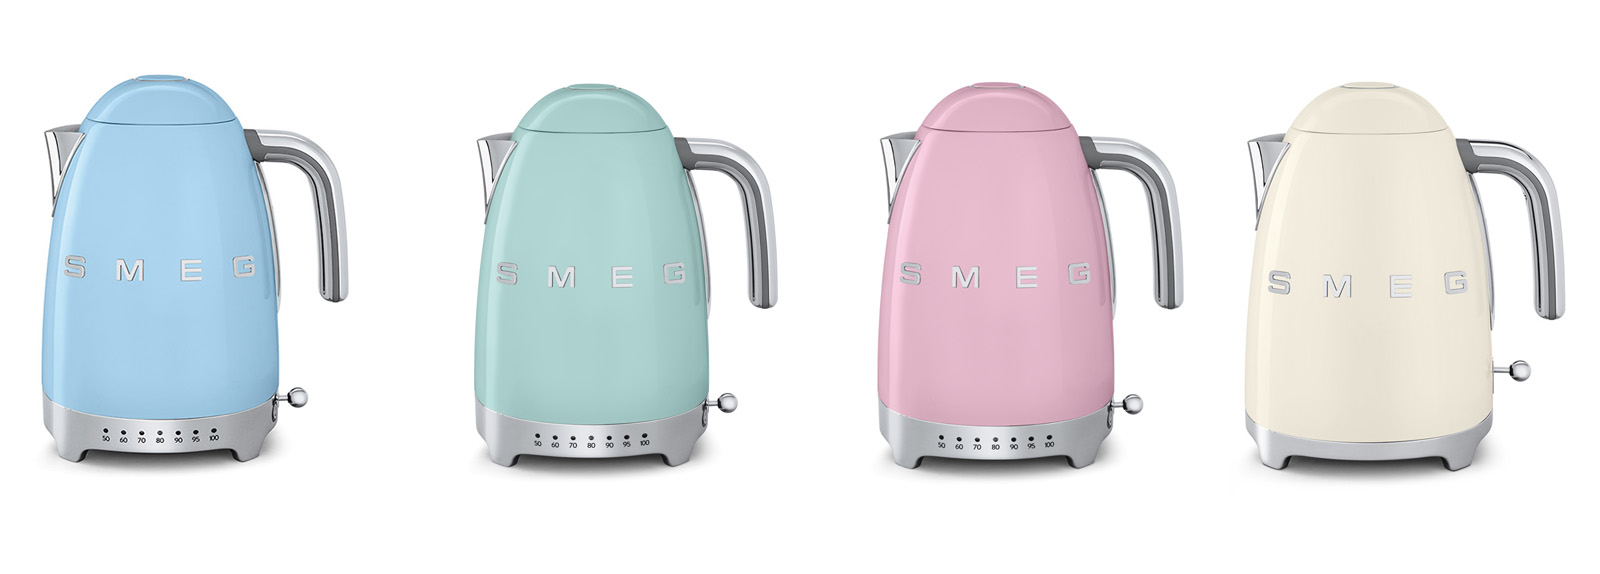 Collect This Idea Smeg 50 S Retro Style Small Home Liances 2